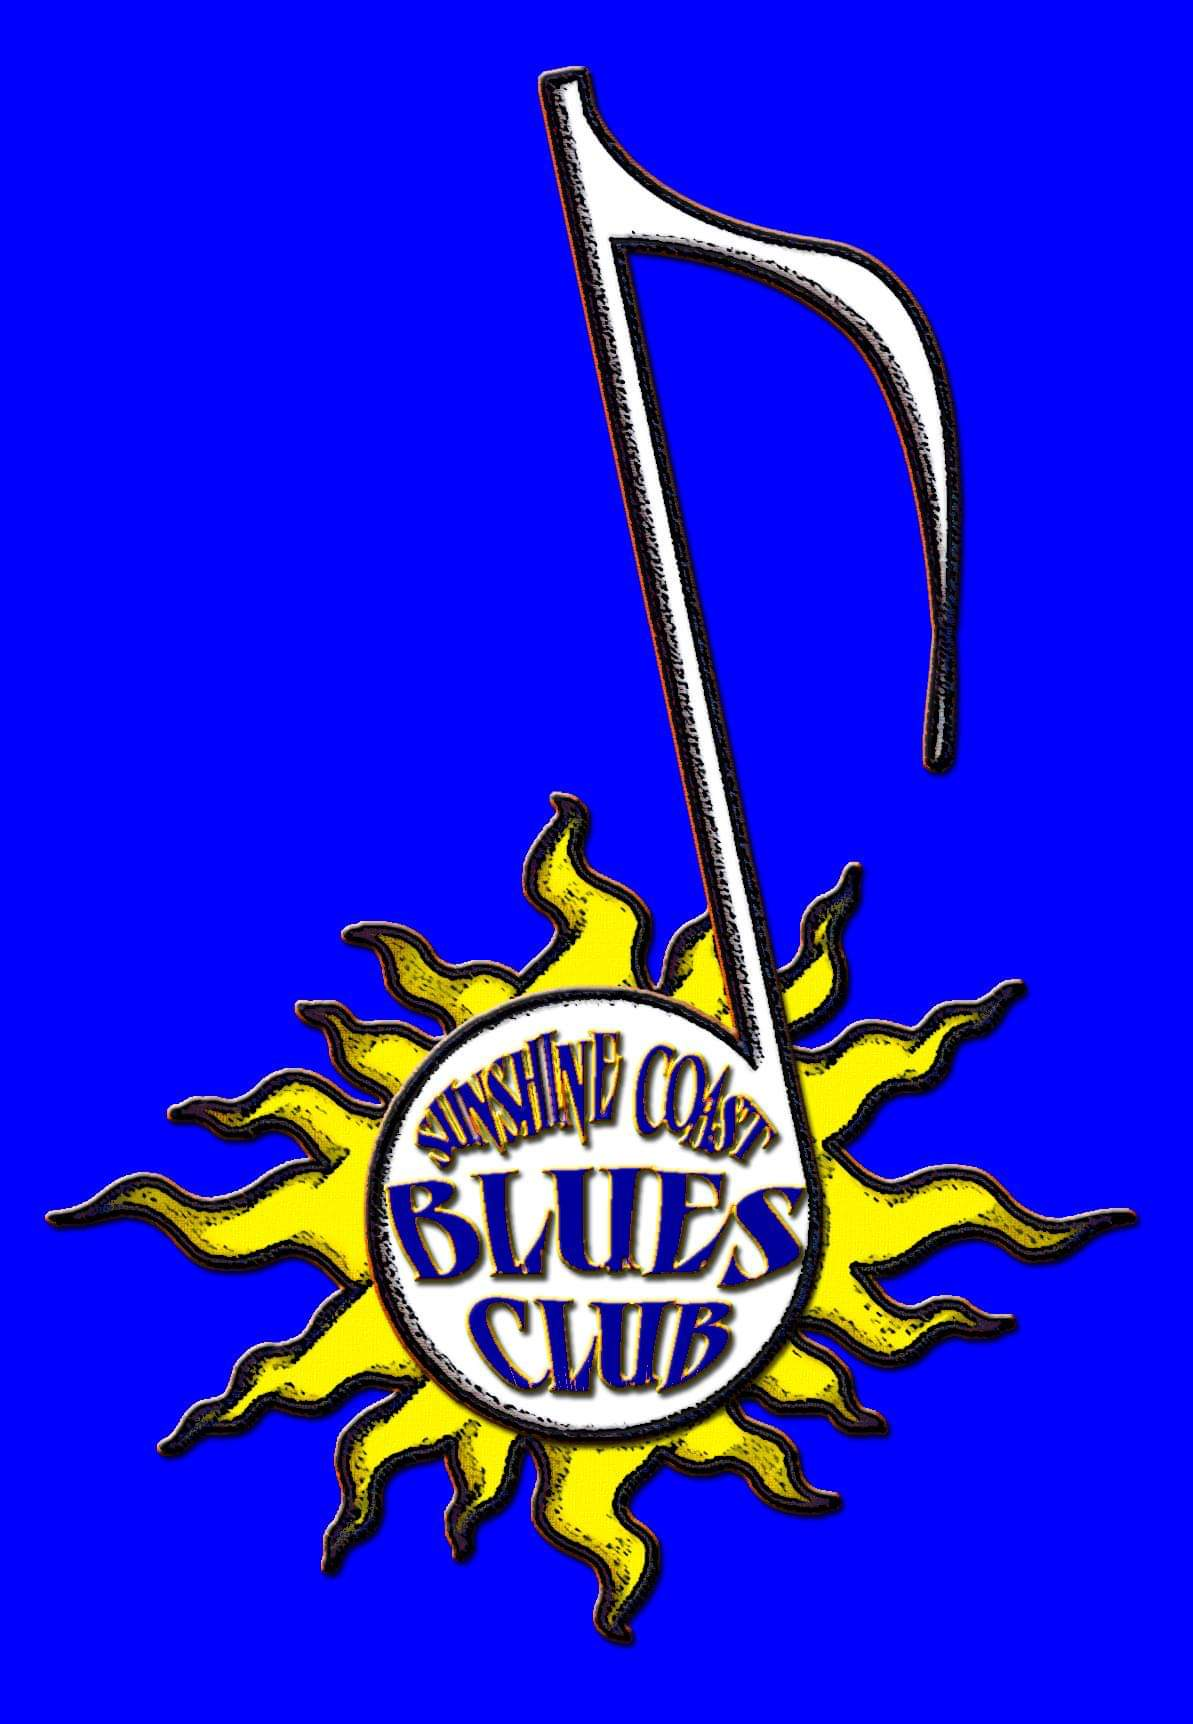 Sunshine Coast Blues Club